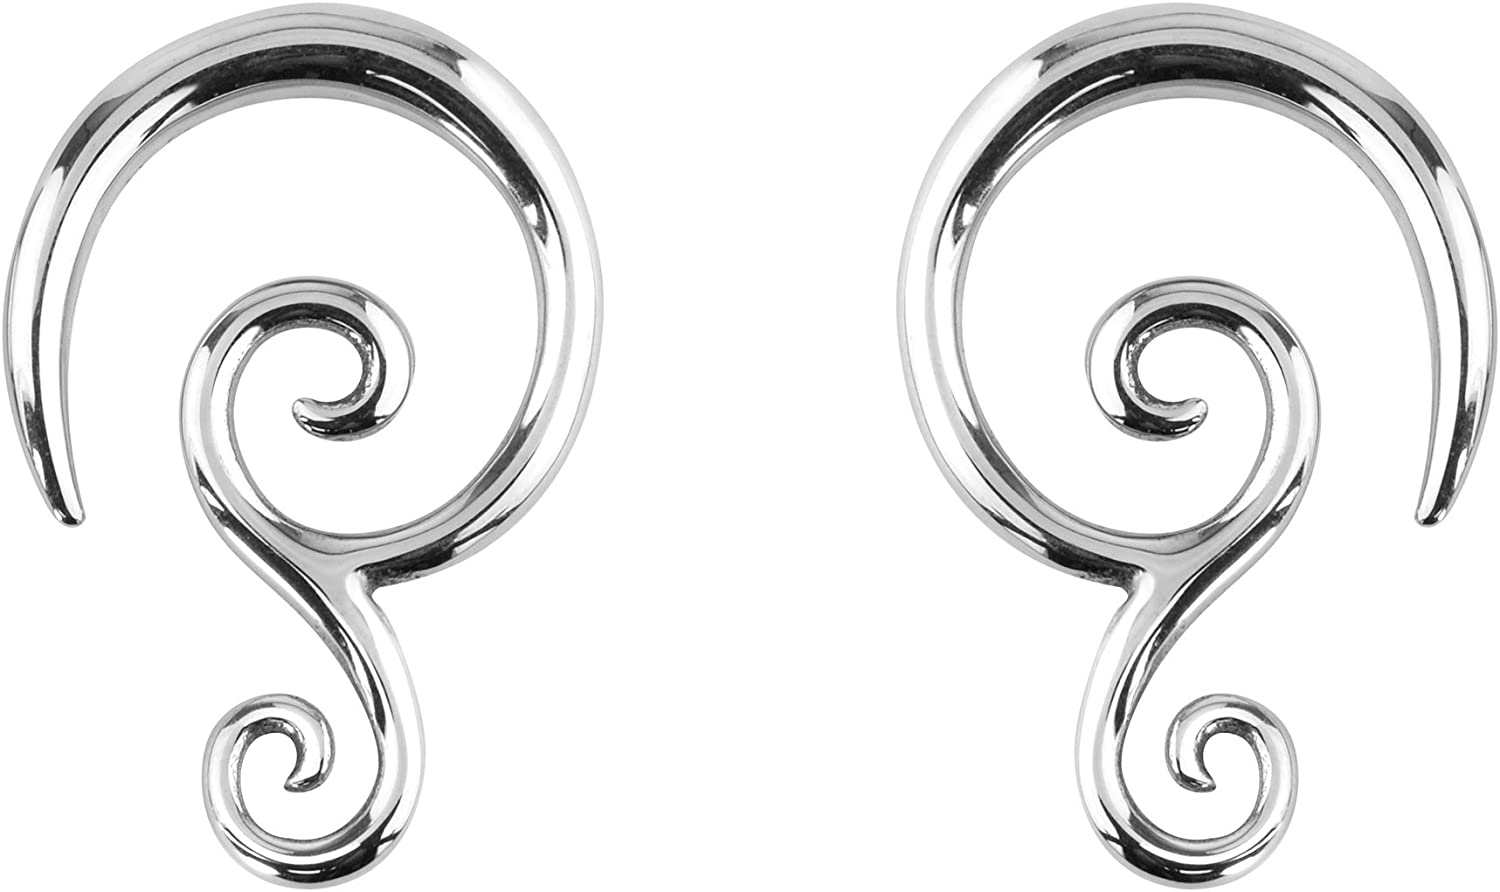 Forbidden Body Jewelry Pair of 6G-14G Surgical Steel Solid Tribal Design Taper Earrings